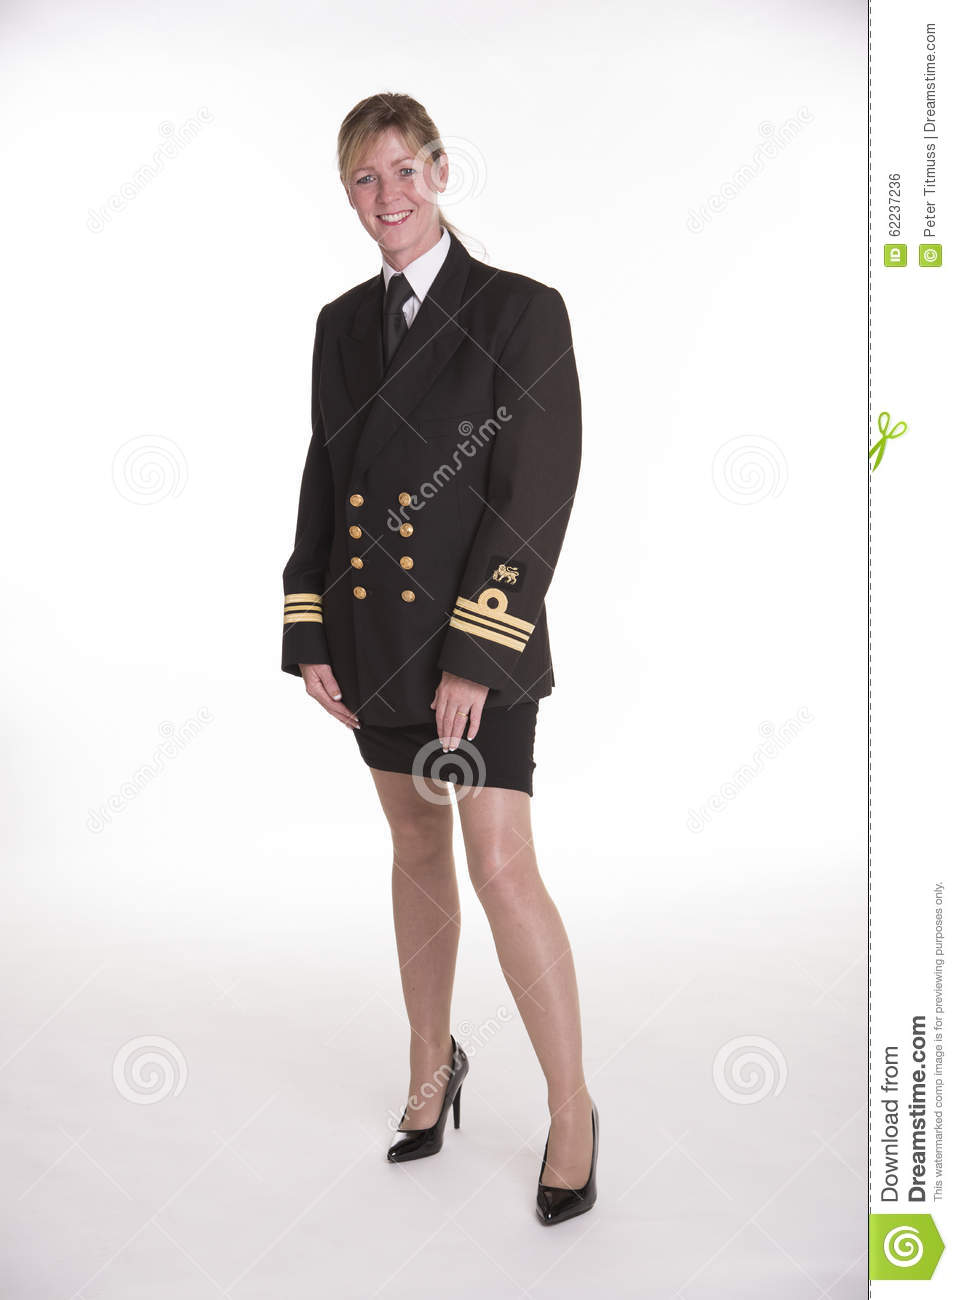 Female Naval Officer Uniform 117